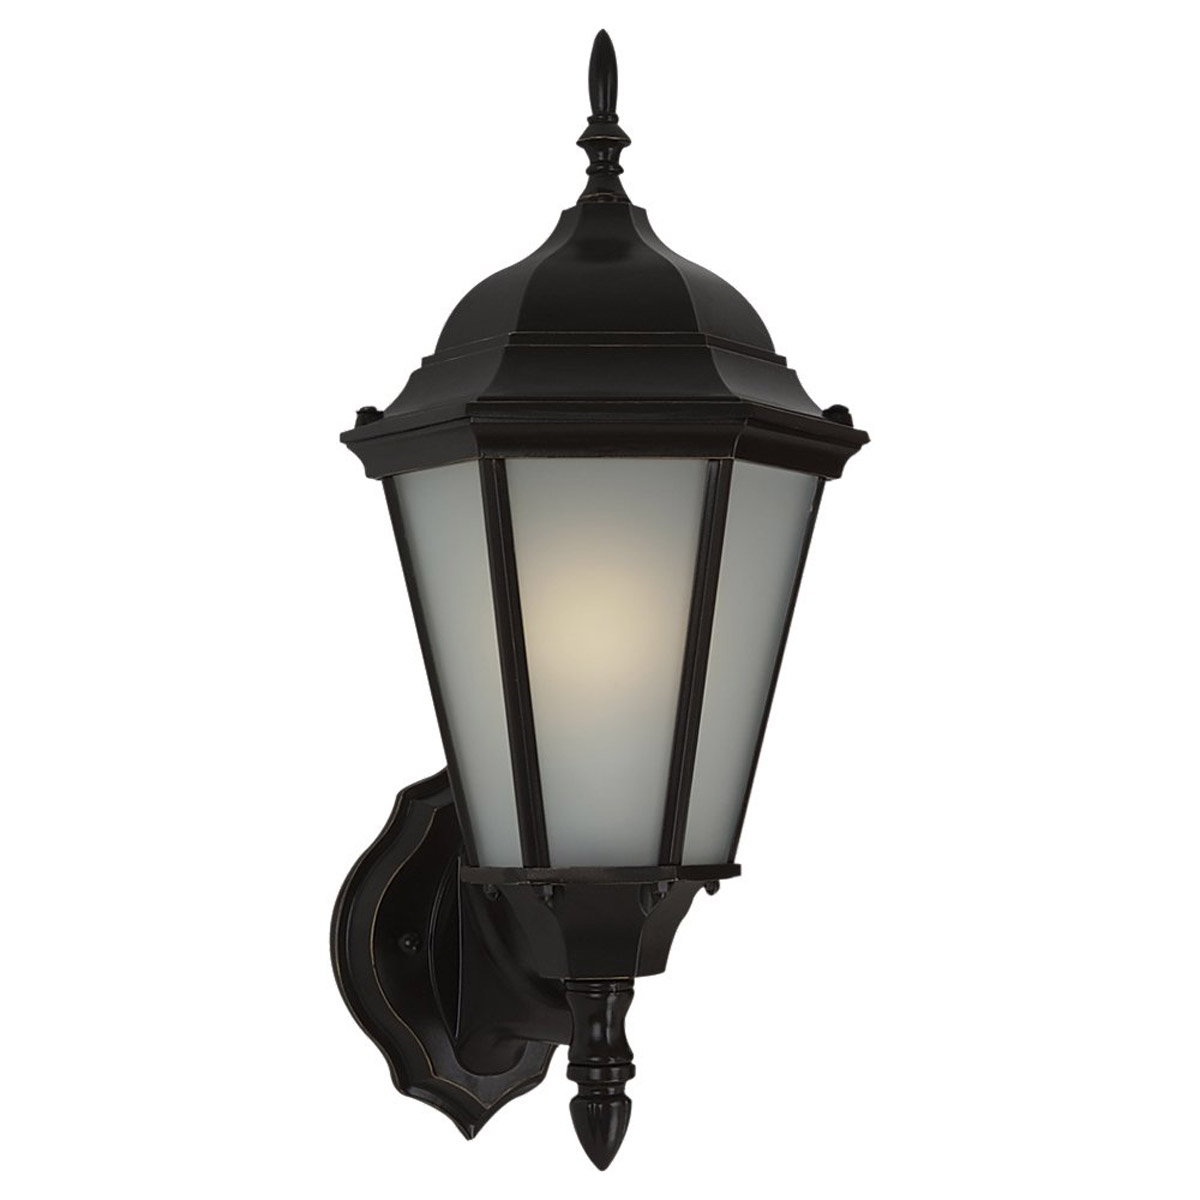 Sea Gull Lighting Bakersville 1 Light Outdoor Wall Lantern in Heirloom Bronze 88941BL-782